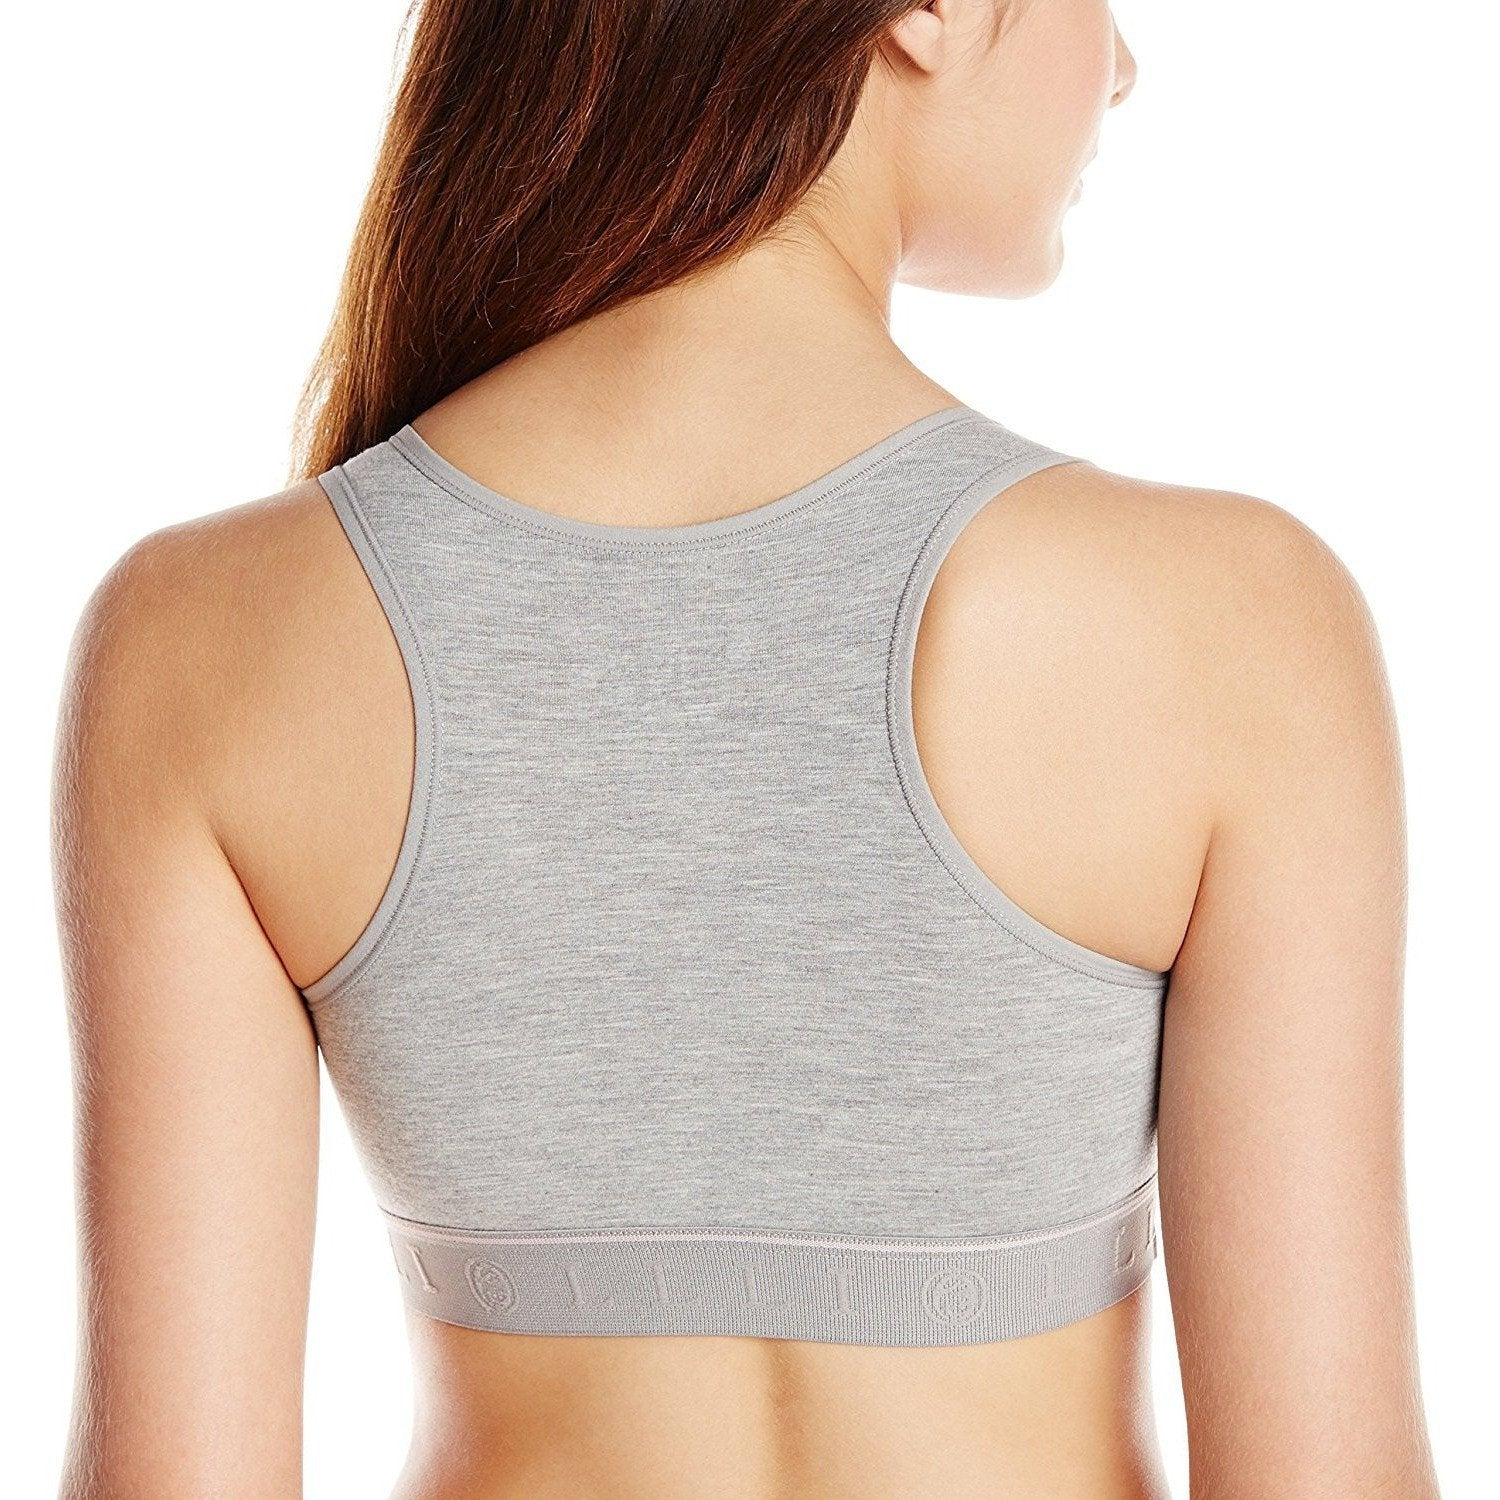 Pull On Nursing Sport Bra - Studio Europe